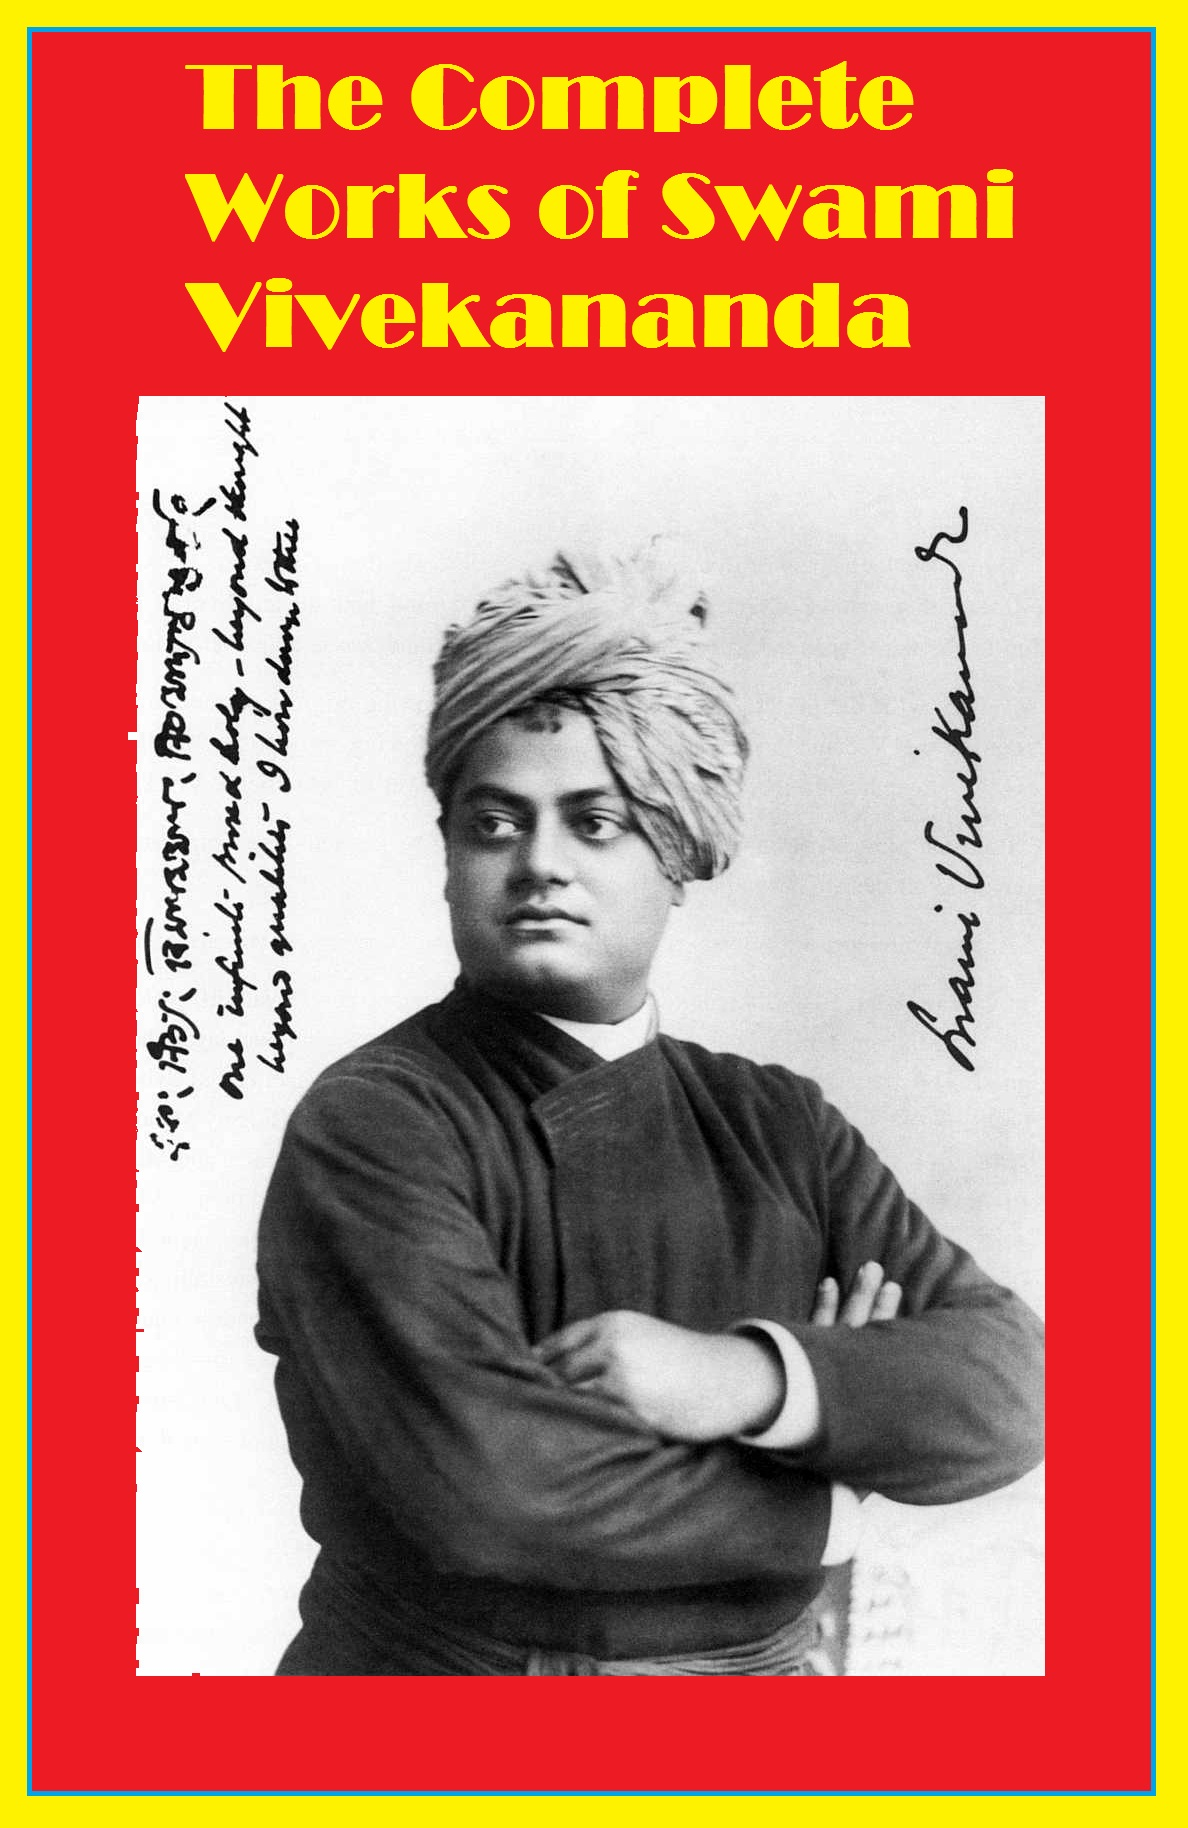 The Complete Works of Swami Vivekananda